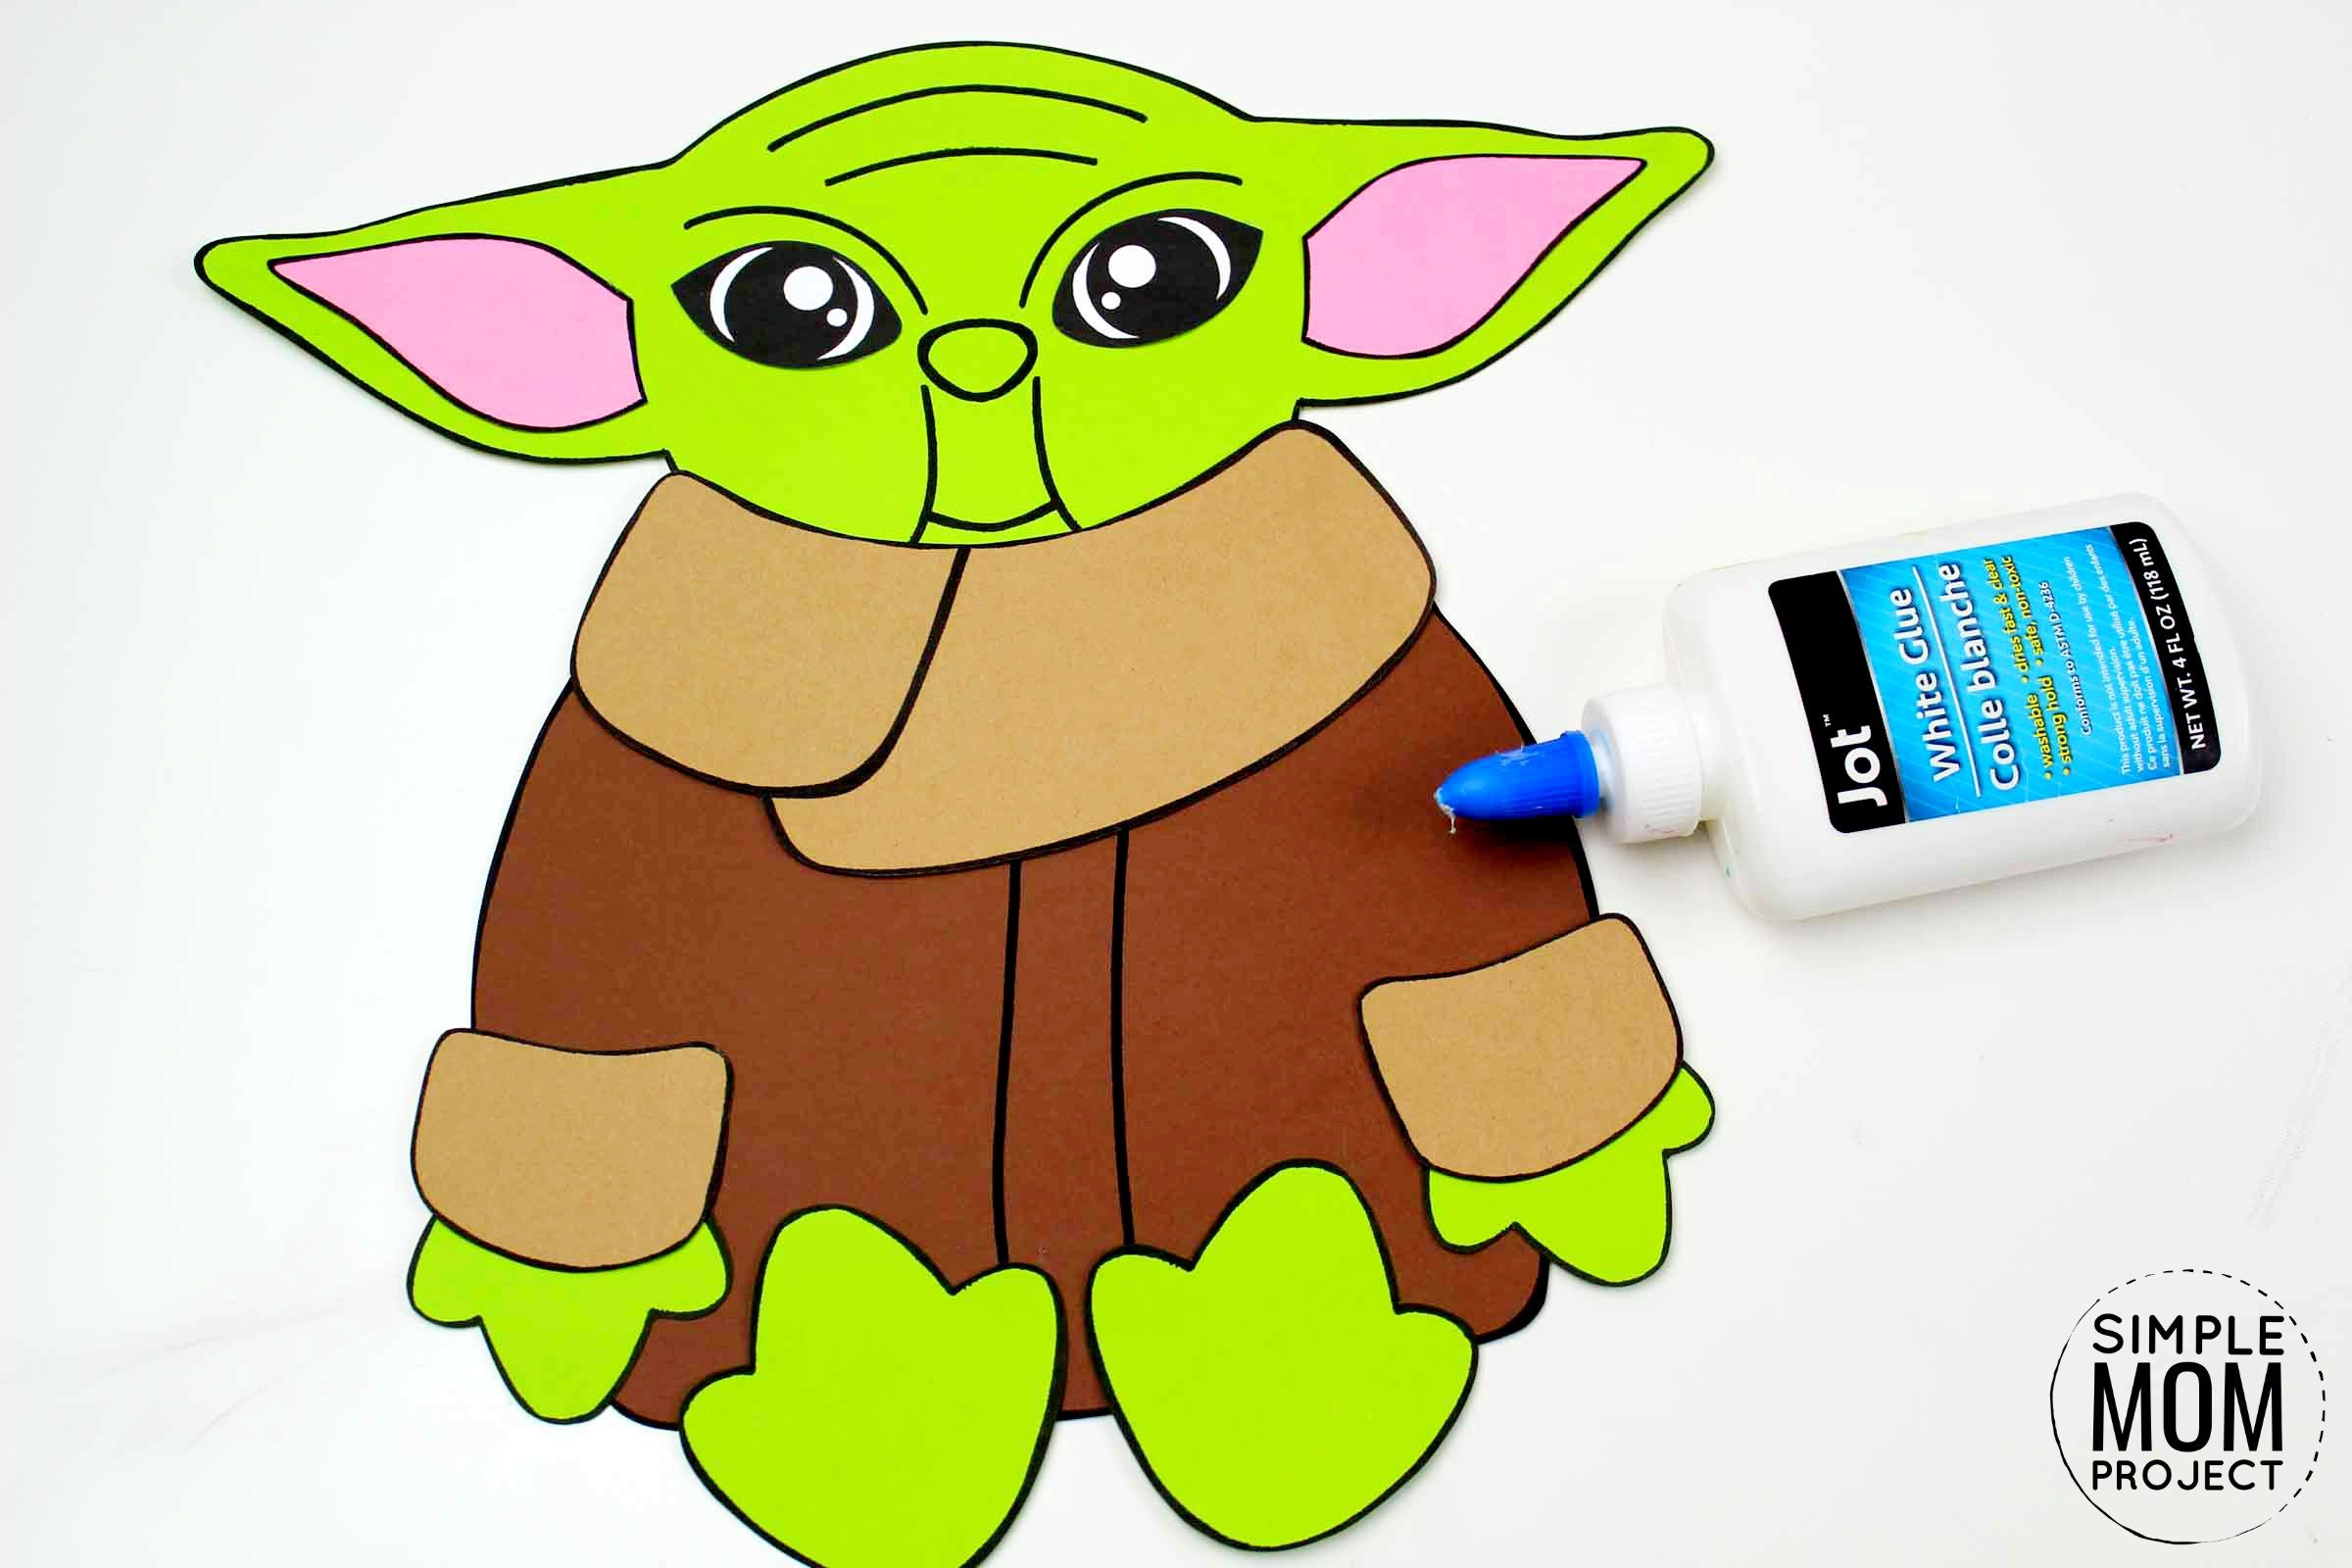 Free Printable Star Wars Baby Yoda Craft for Kids, Preschoolers and toddlers 5